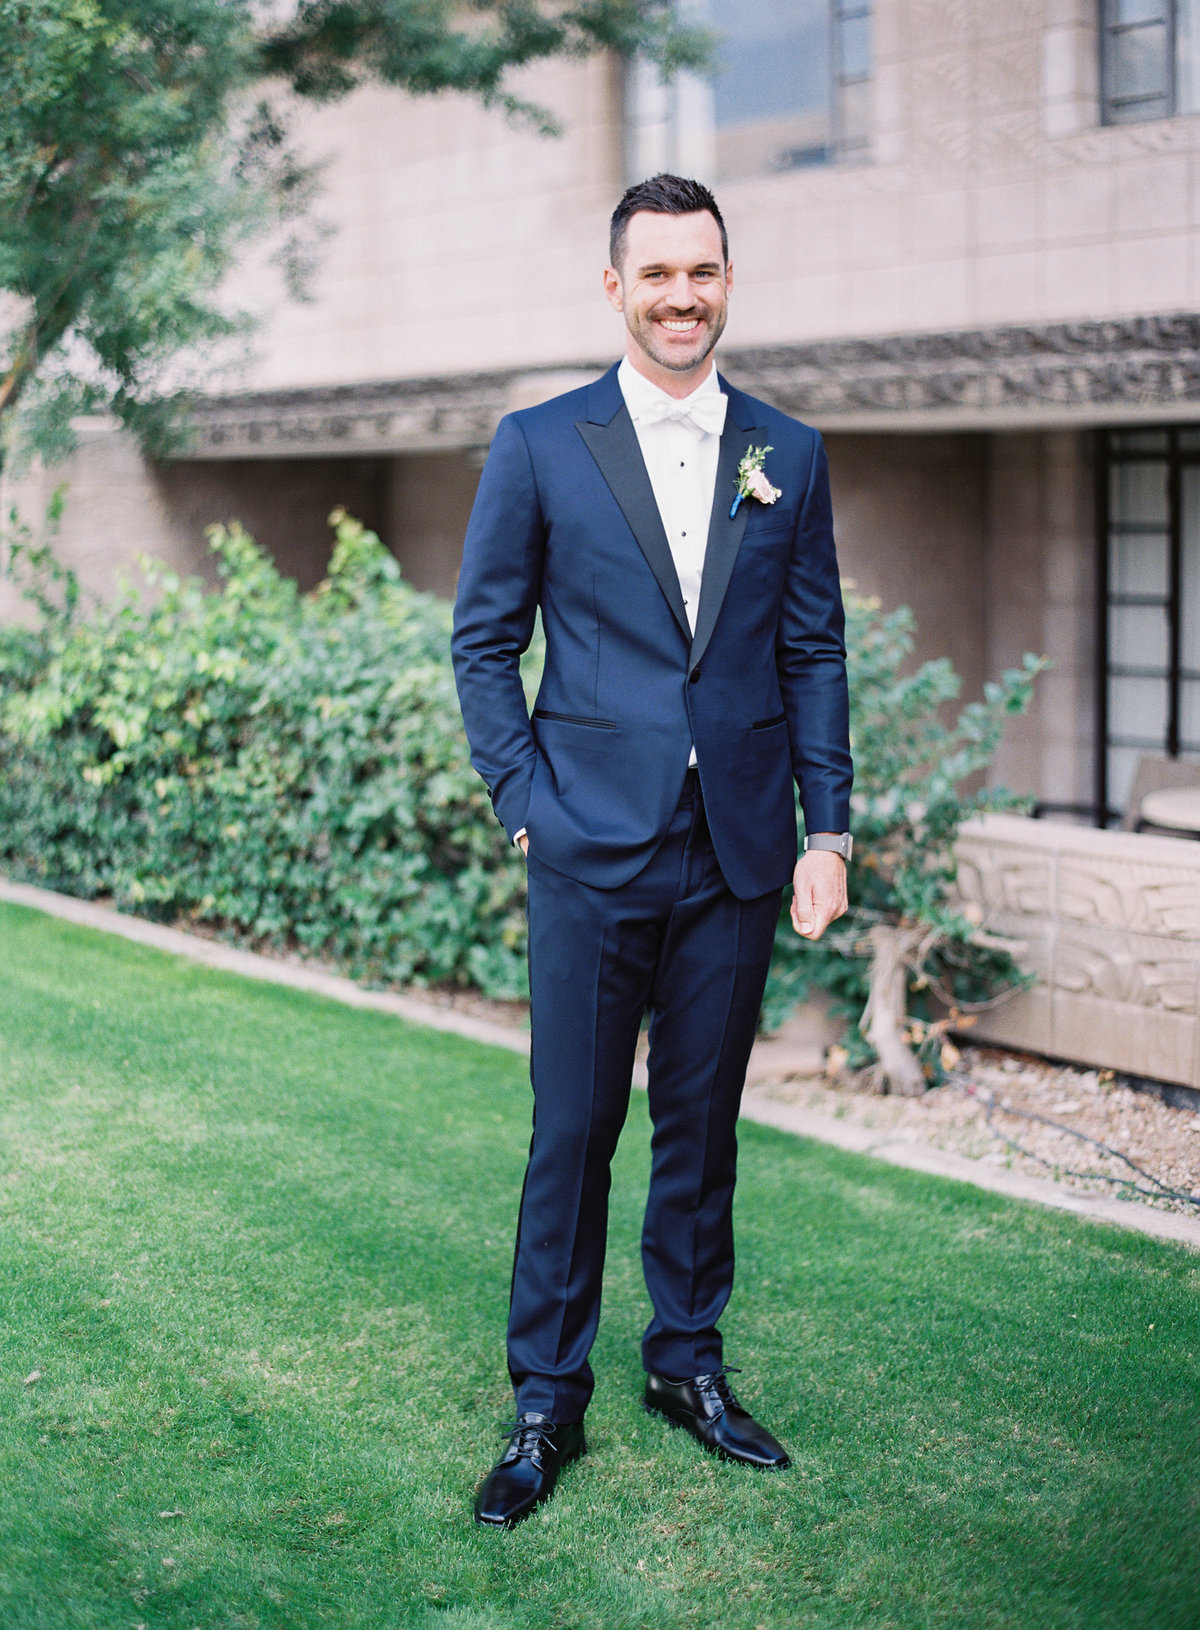 Arizona Biltmore Wedding - Mary Claire Photography-22